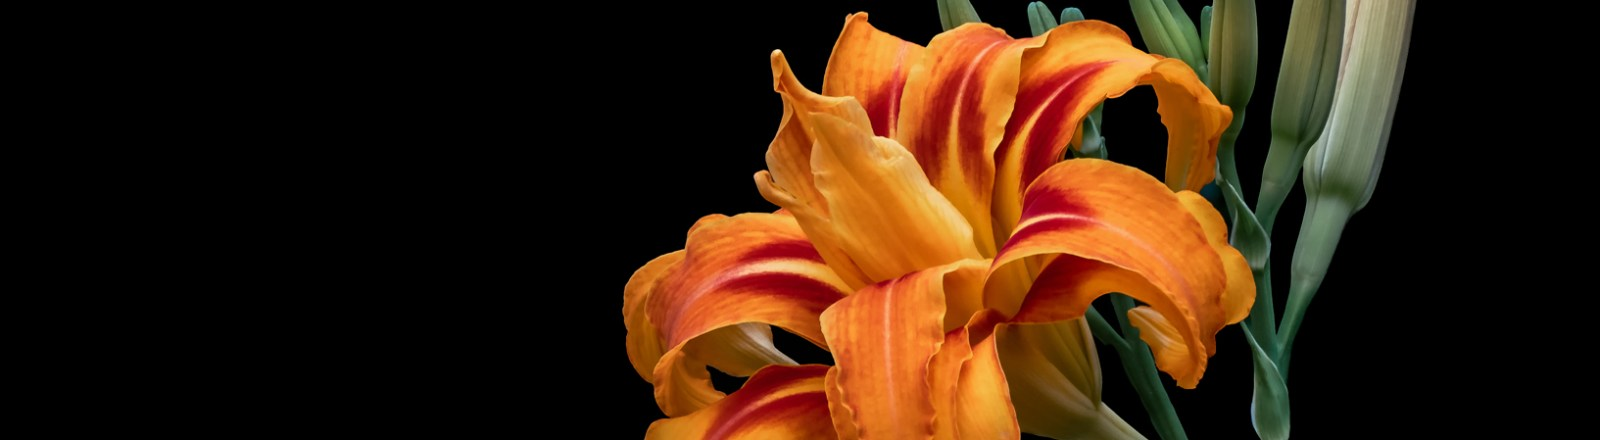 Lilies on Black Backgrounds (3 of 10)